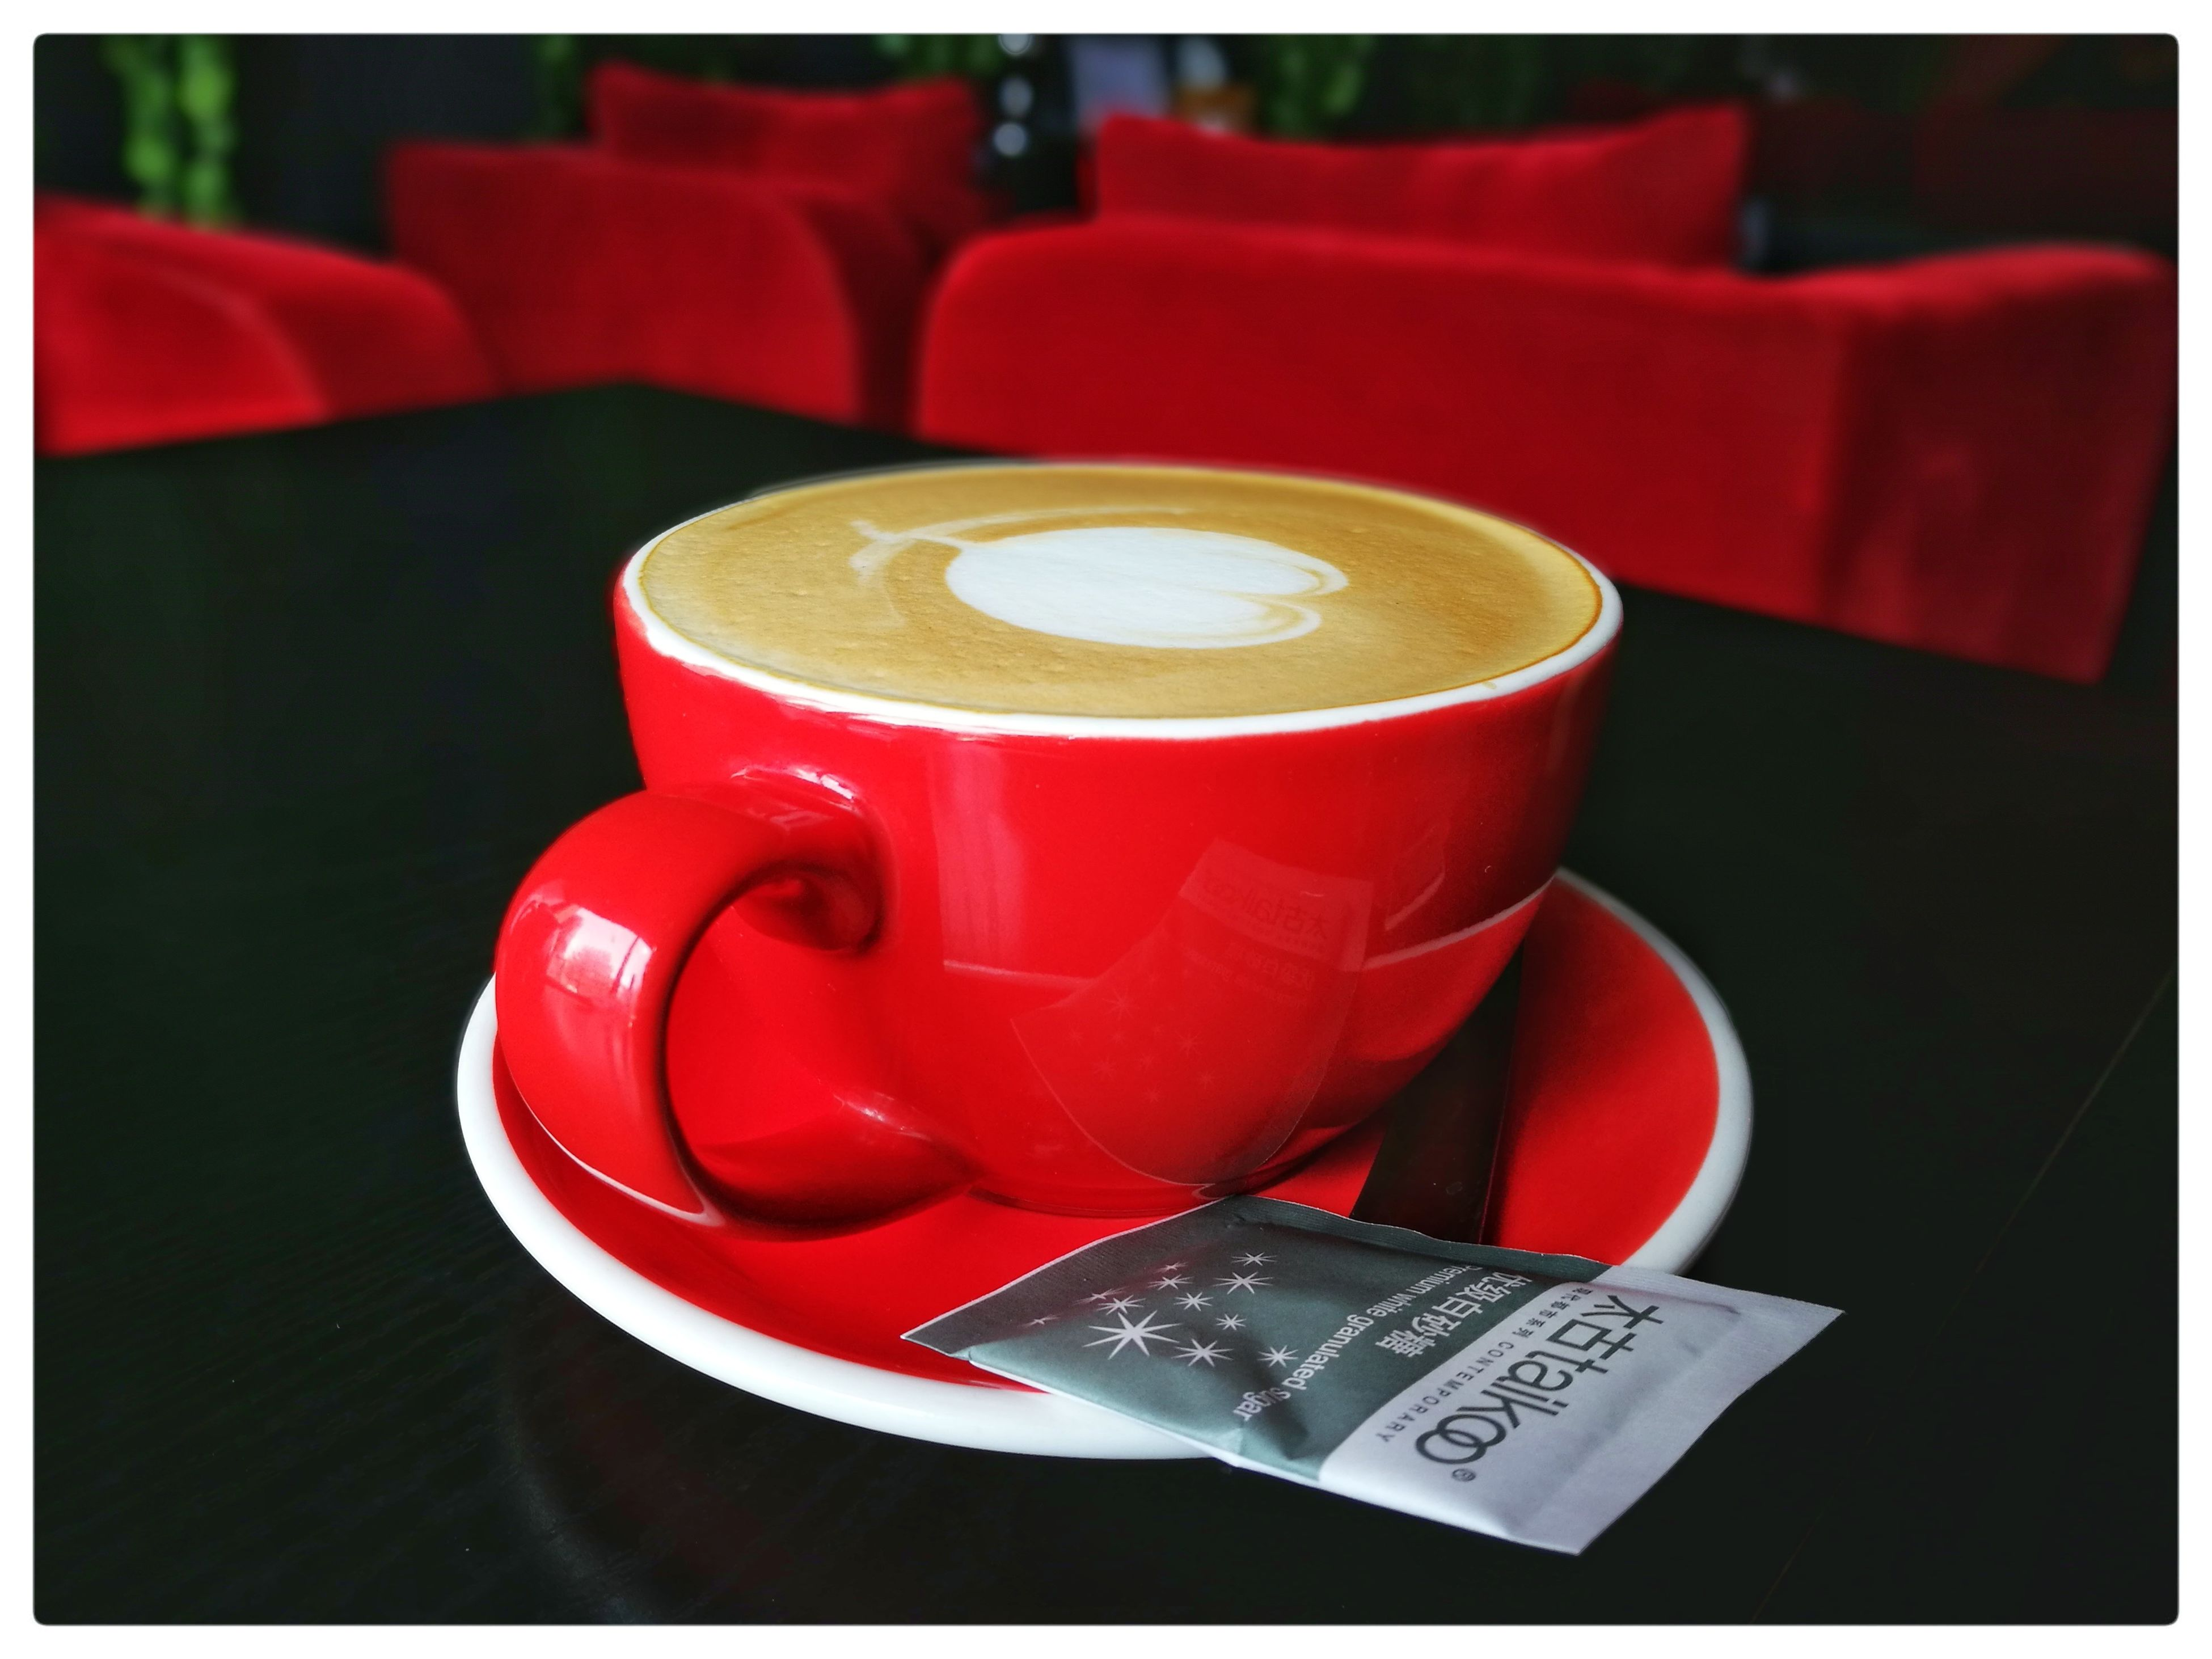 coffee cup, drink, coffee - drink, refreshment, table, food and drink, cup, saucer, indoors, cappuccino, red, cafe, no people, frothy drink, froth art, close-up, latte, freshness, day